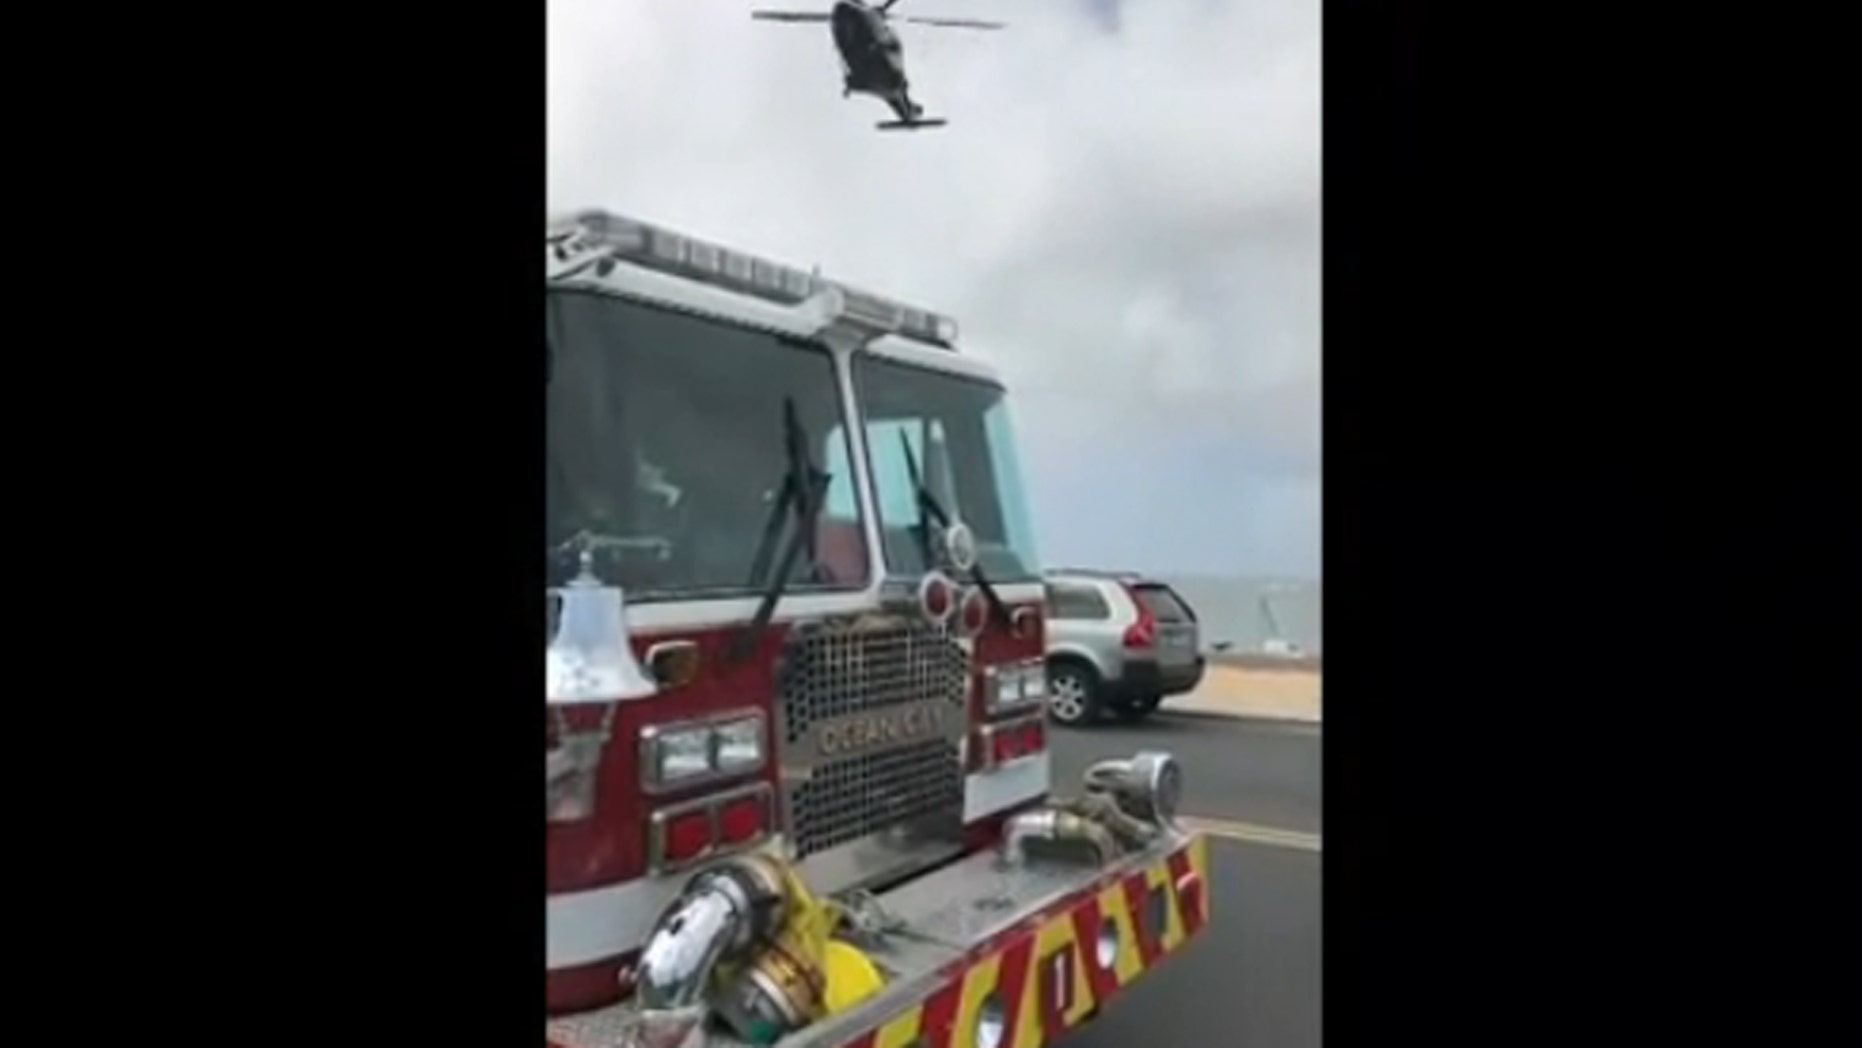 A Maryland State Police Helicopter transported a woman who was impaled by an umbrella on Sunday.